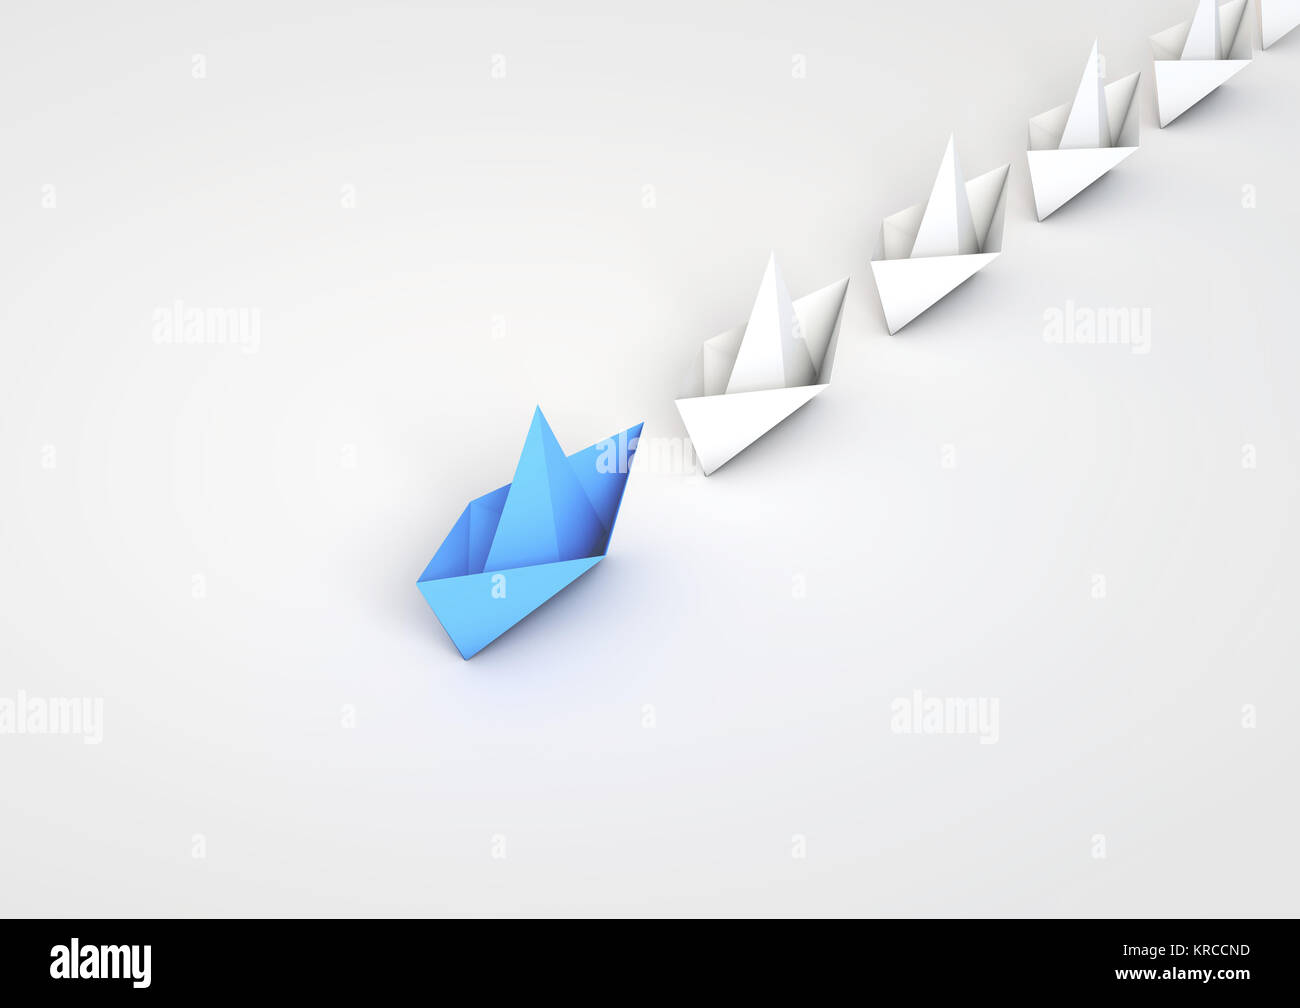 Origami Boats Leadship Concept 3d Rendering Stock Photo 169303833